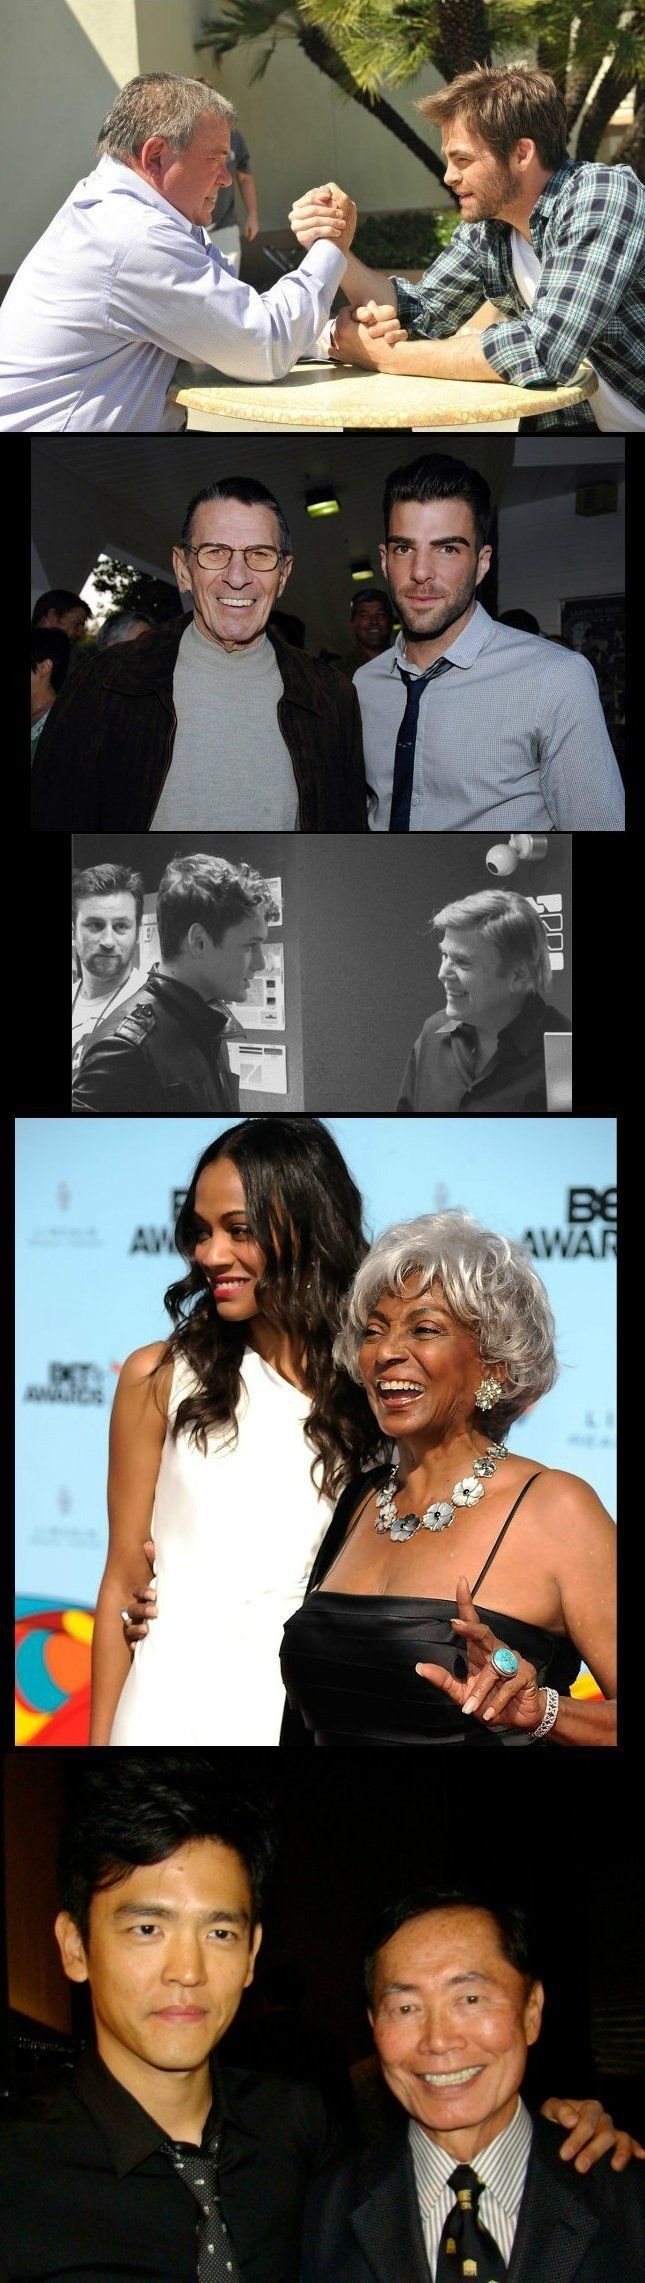 Star Trek: Old and New This is too epic!! FAN GIRLING!!!!